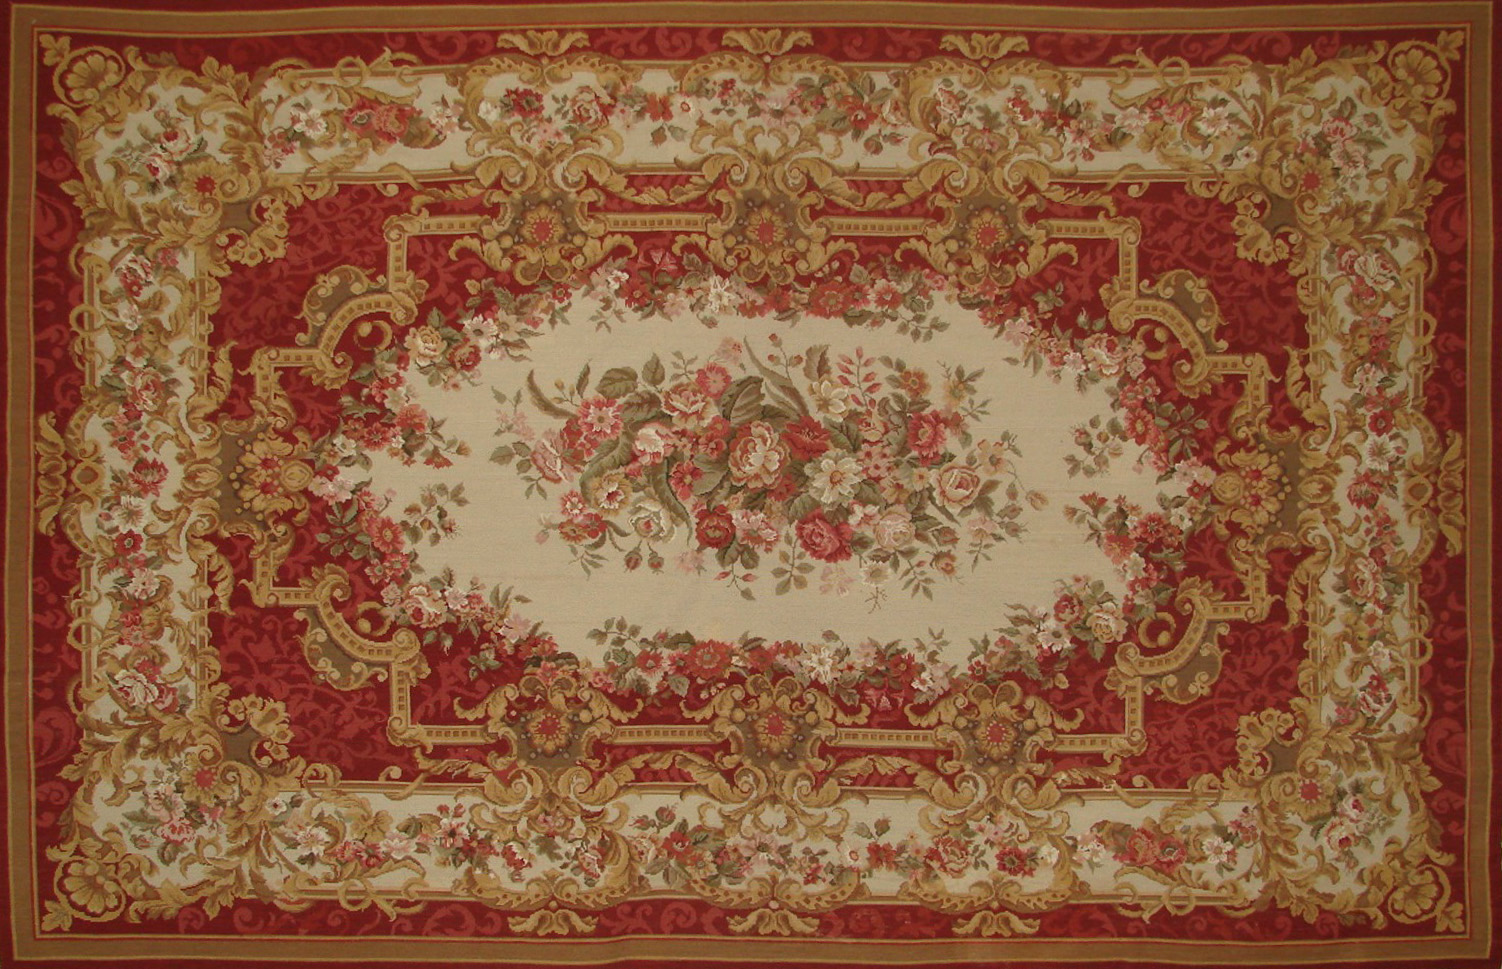 6x9 Flat Weave Hand Knotted Wool Area Rug - MR21012